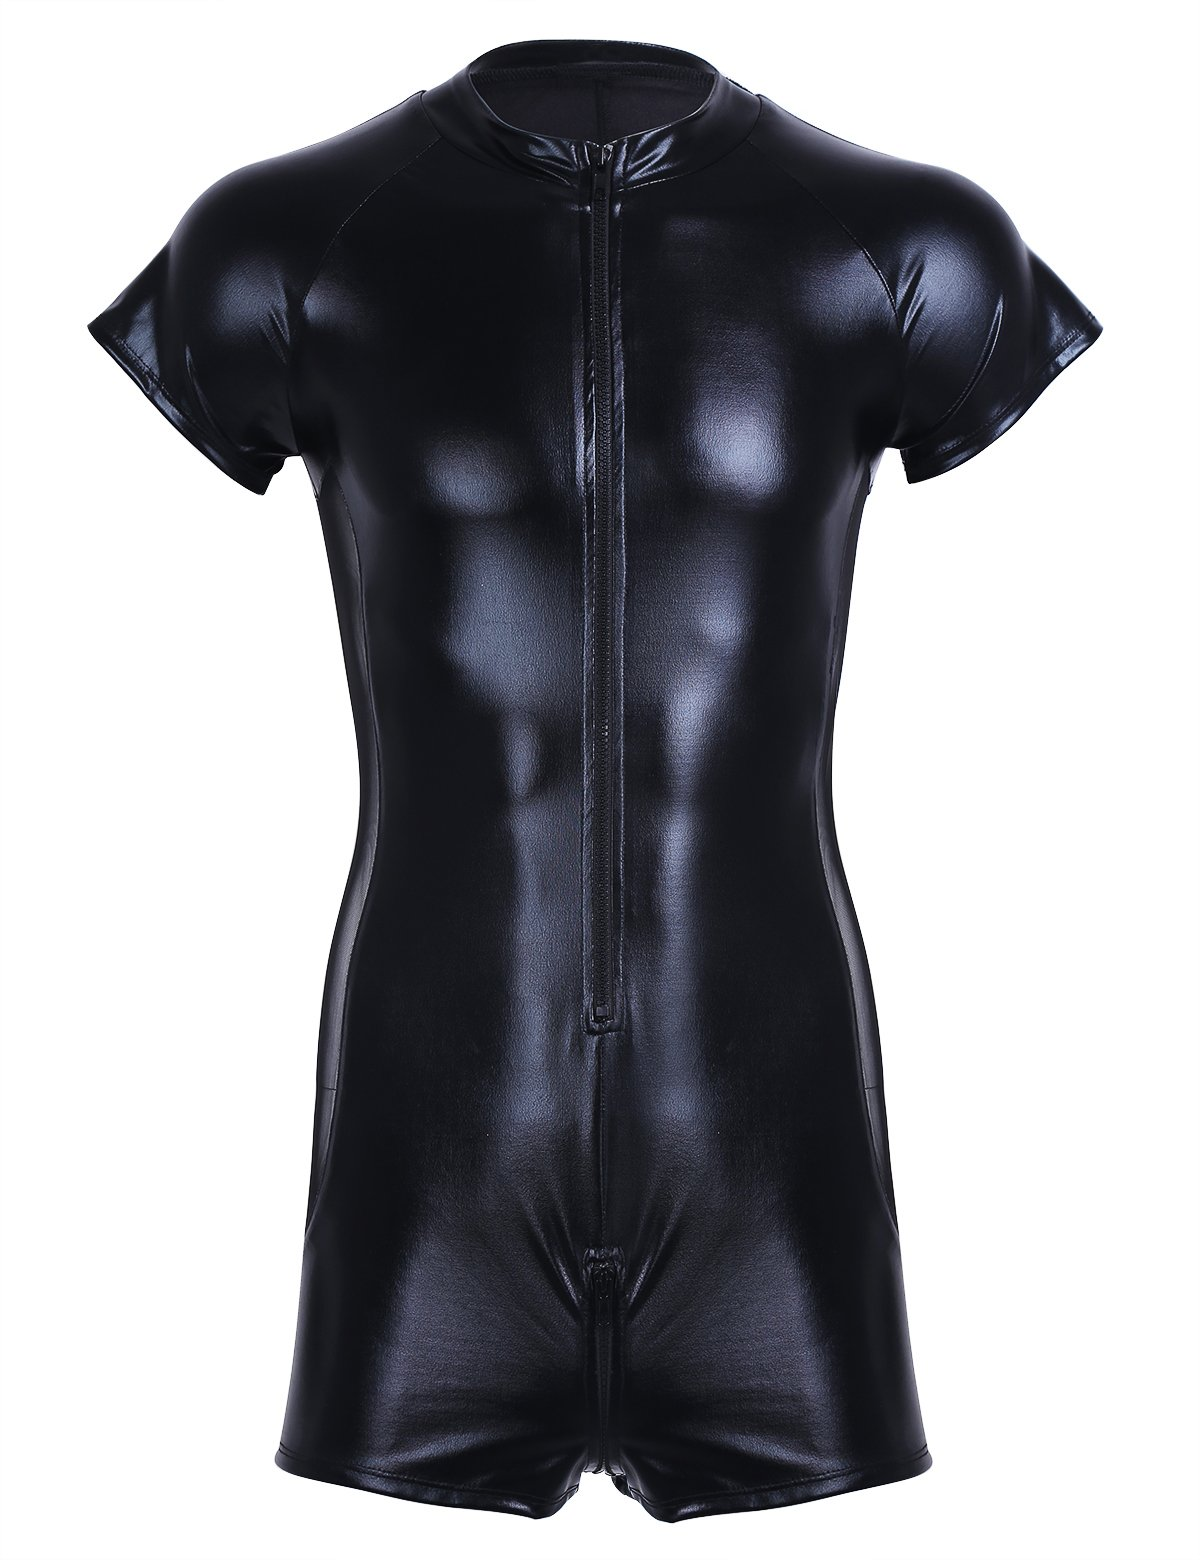 Freebily Sexy Men One-Piece Leotard Patent Leather Short Sleeve Zipper Bodysuit Black X-Large